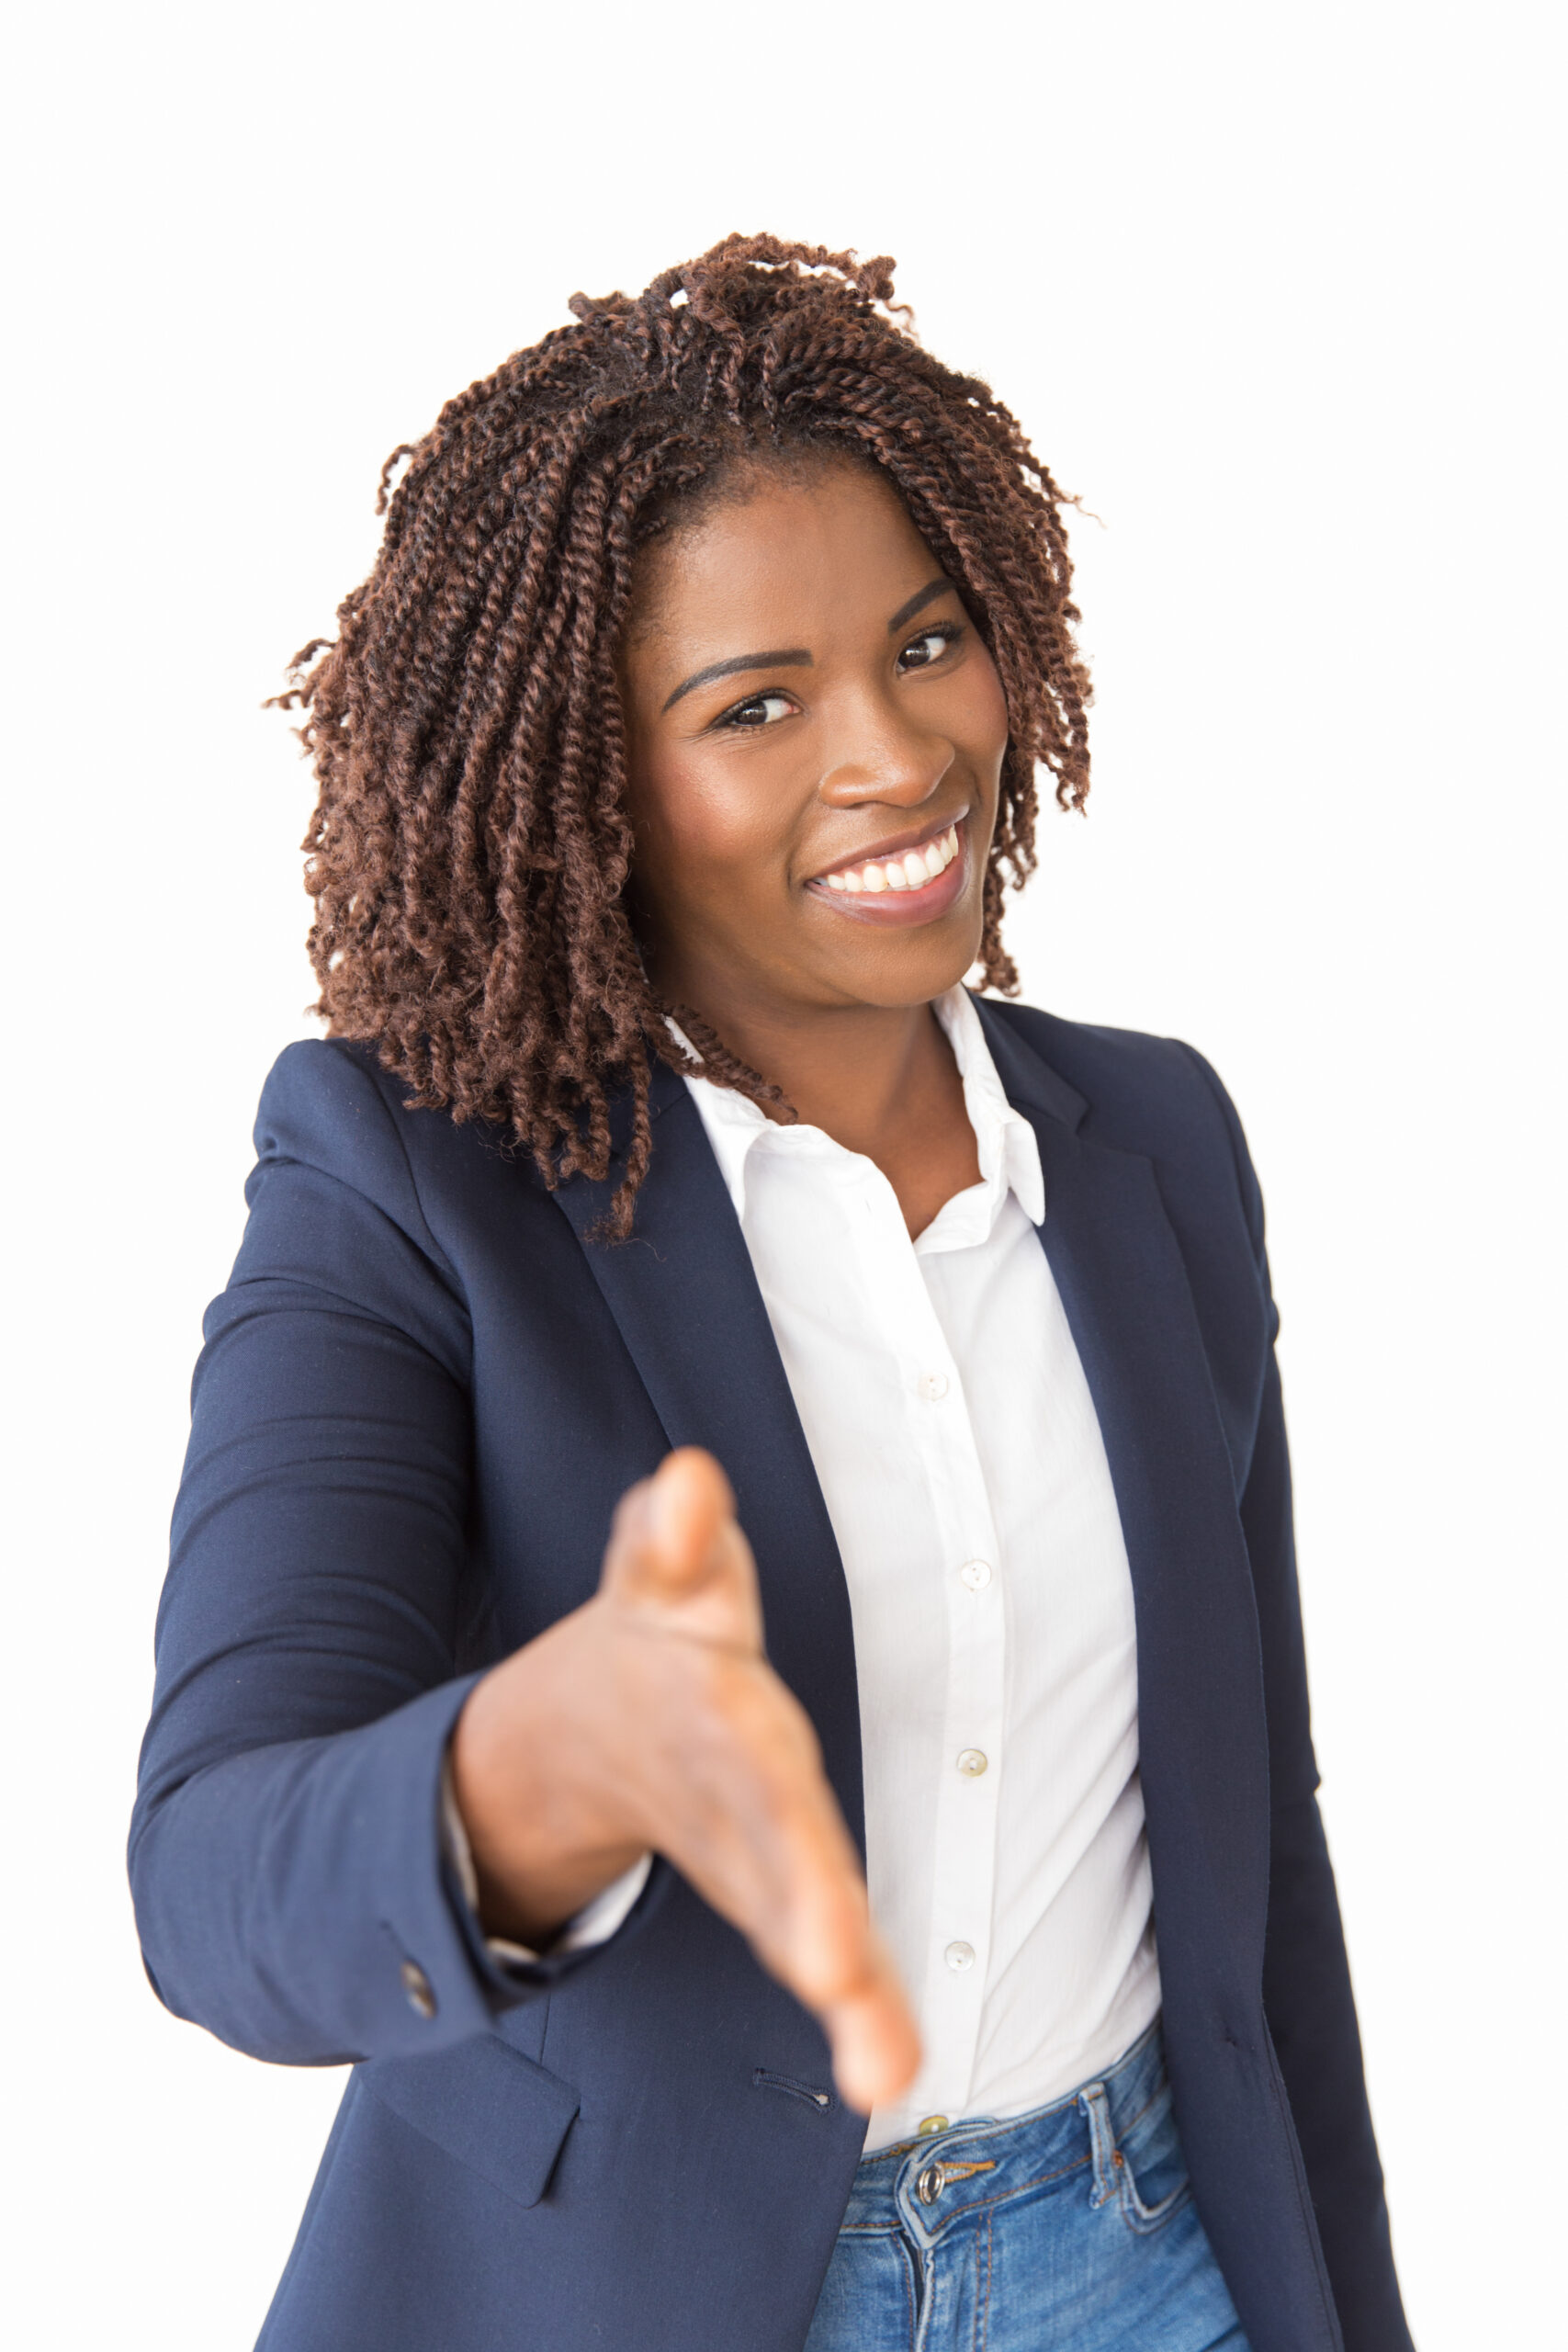 happy business professional woman offering handshake